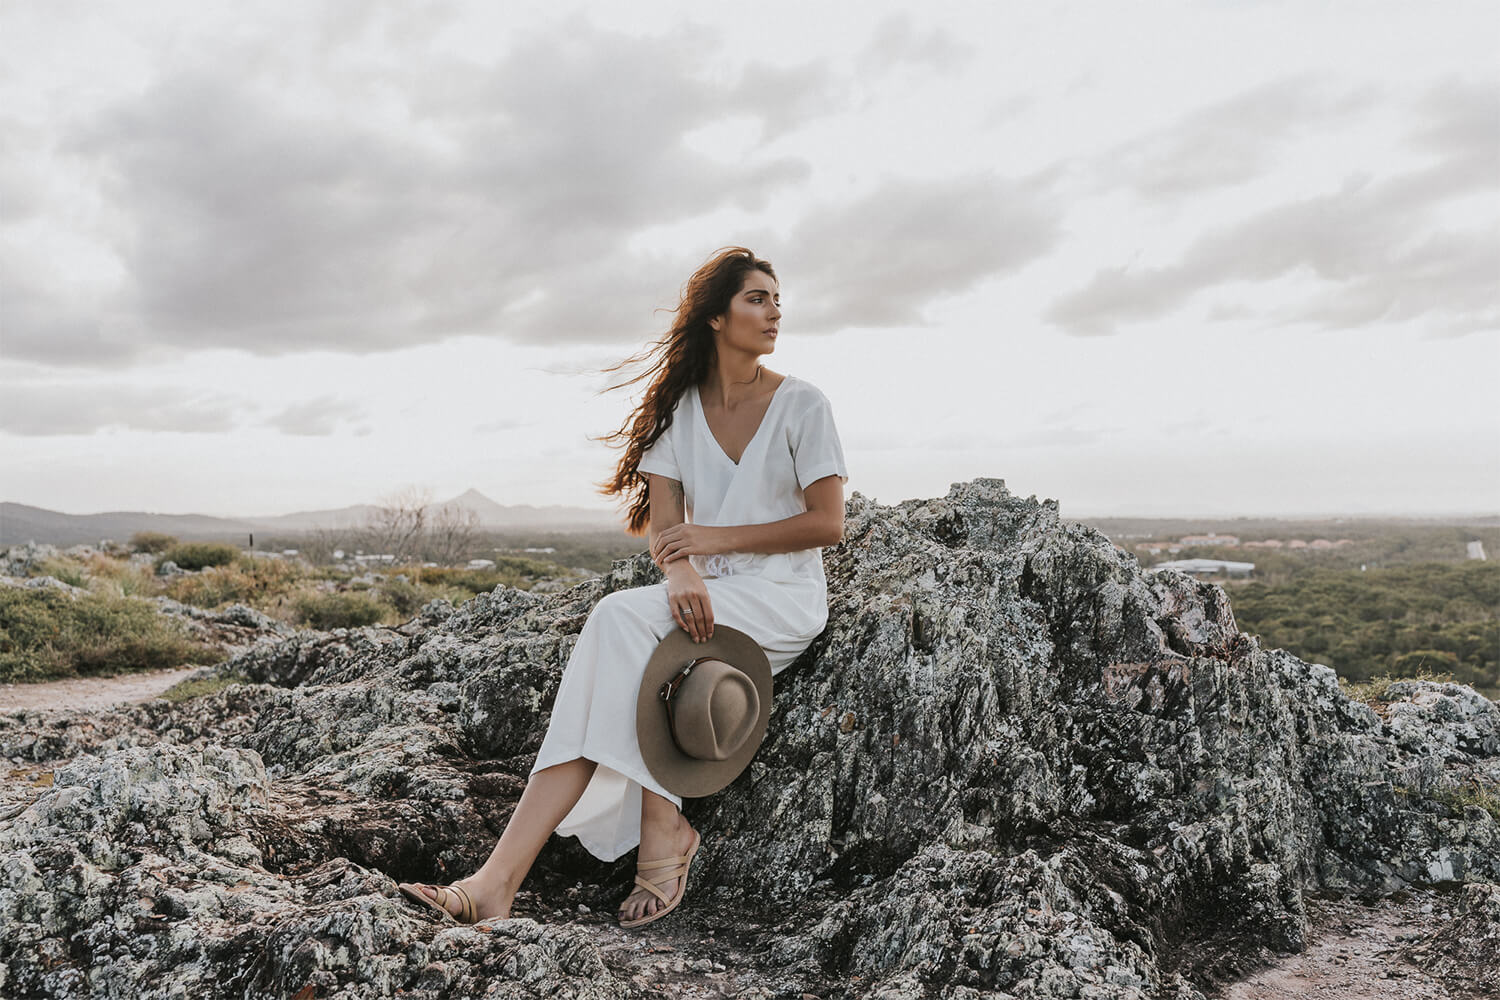 Tasi Travels' White Nomad Maxi Dress is handmade from a sustainable Tencel & hemp blend